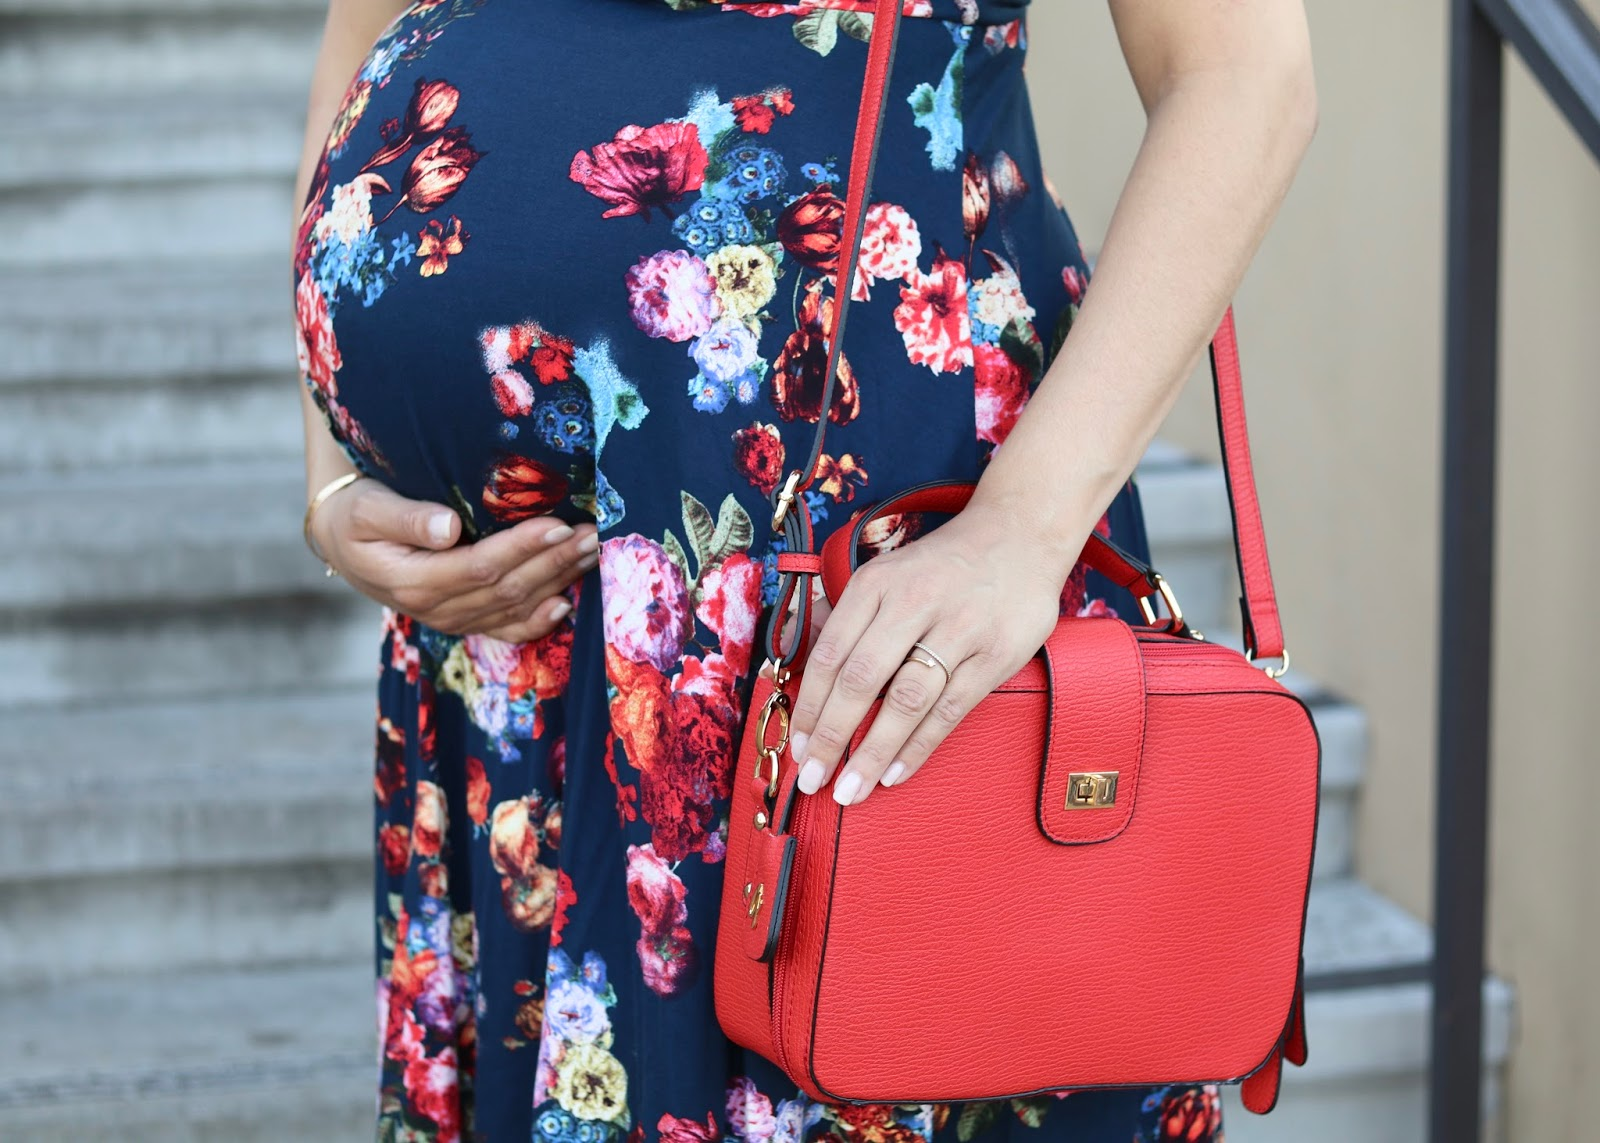 third trimester style, maternity style blogger, pregnant fashion blogger